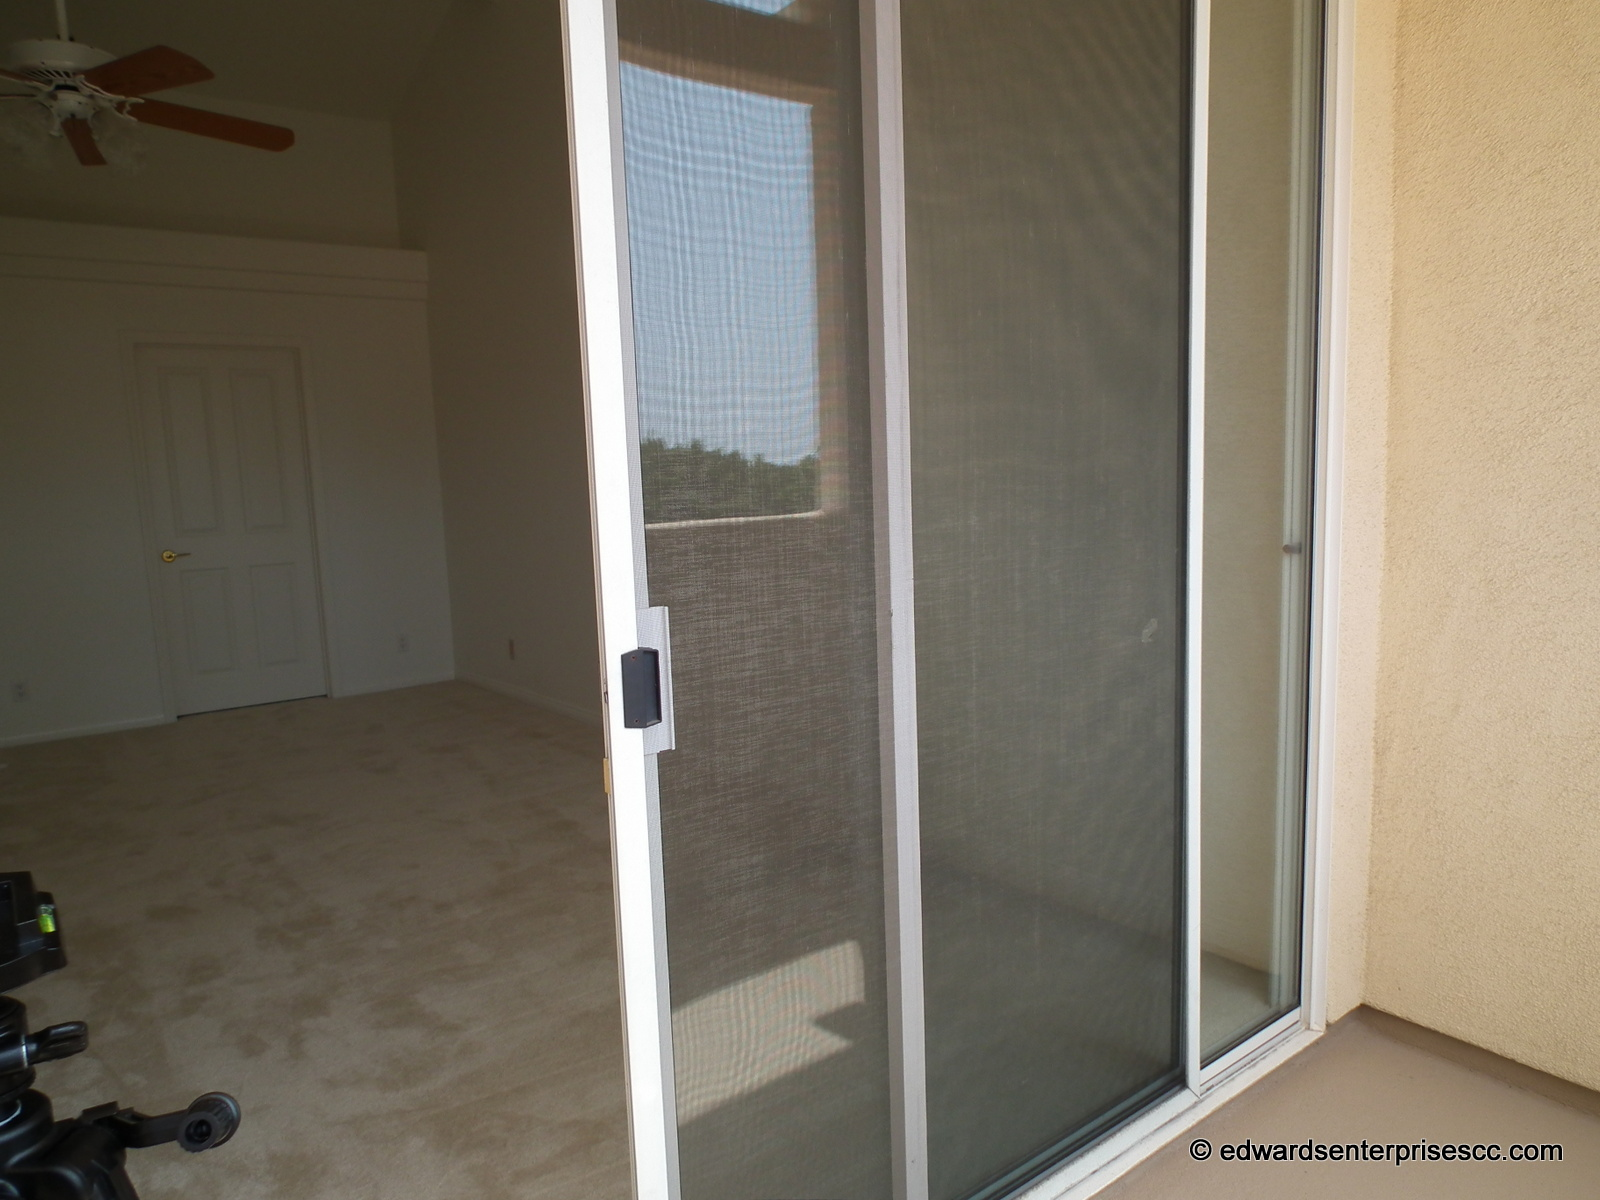 Sliding glass door and screen repairs and installs in Oxnard.